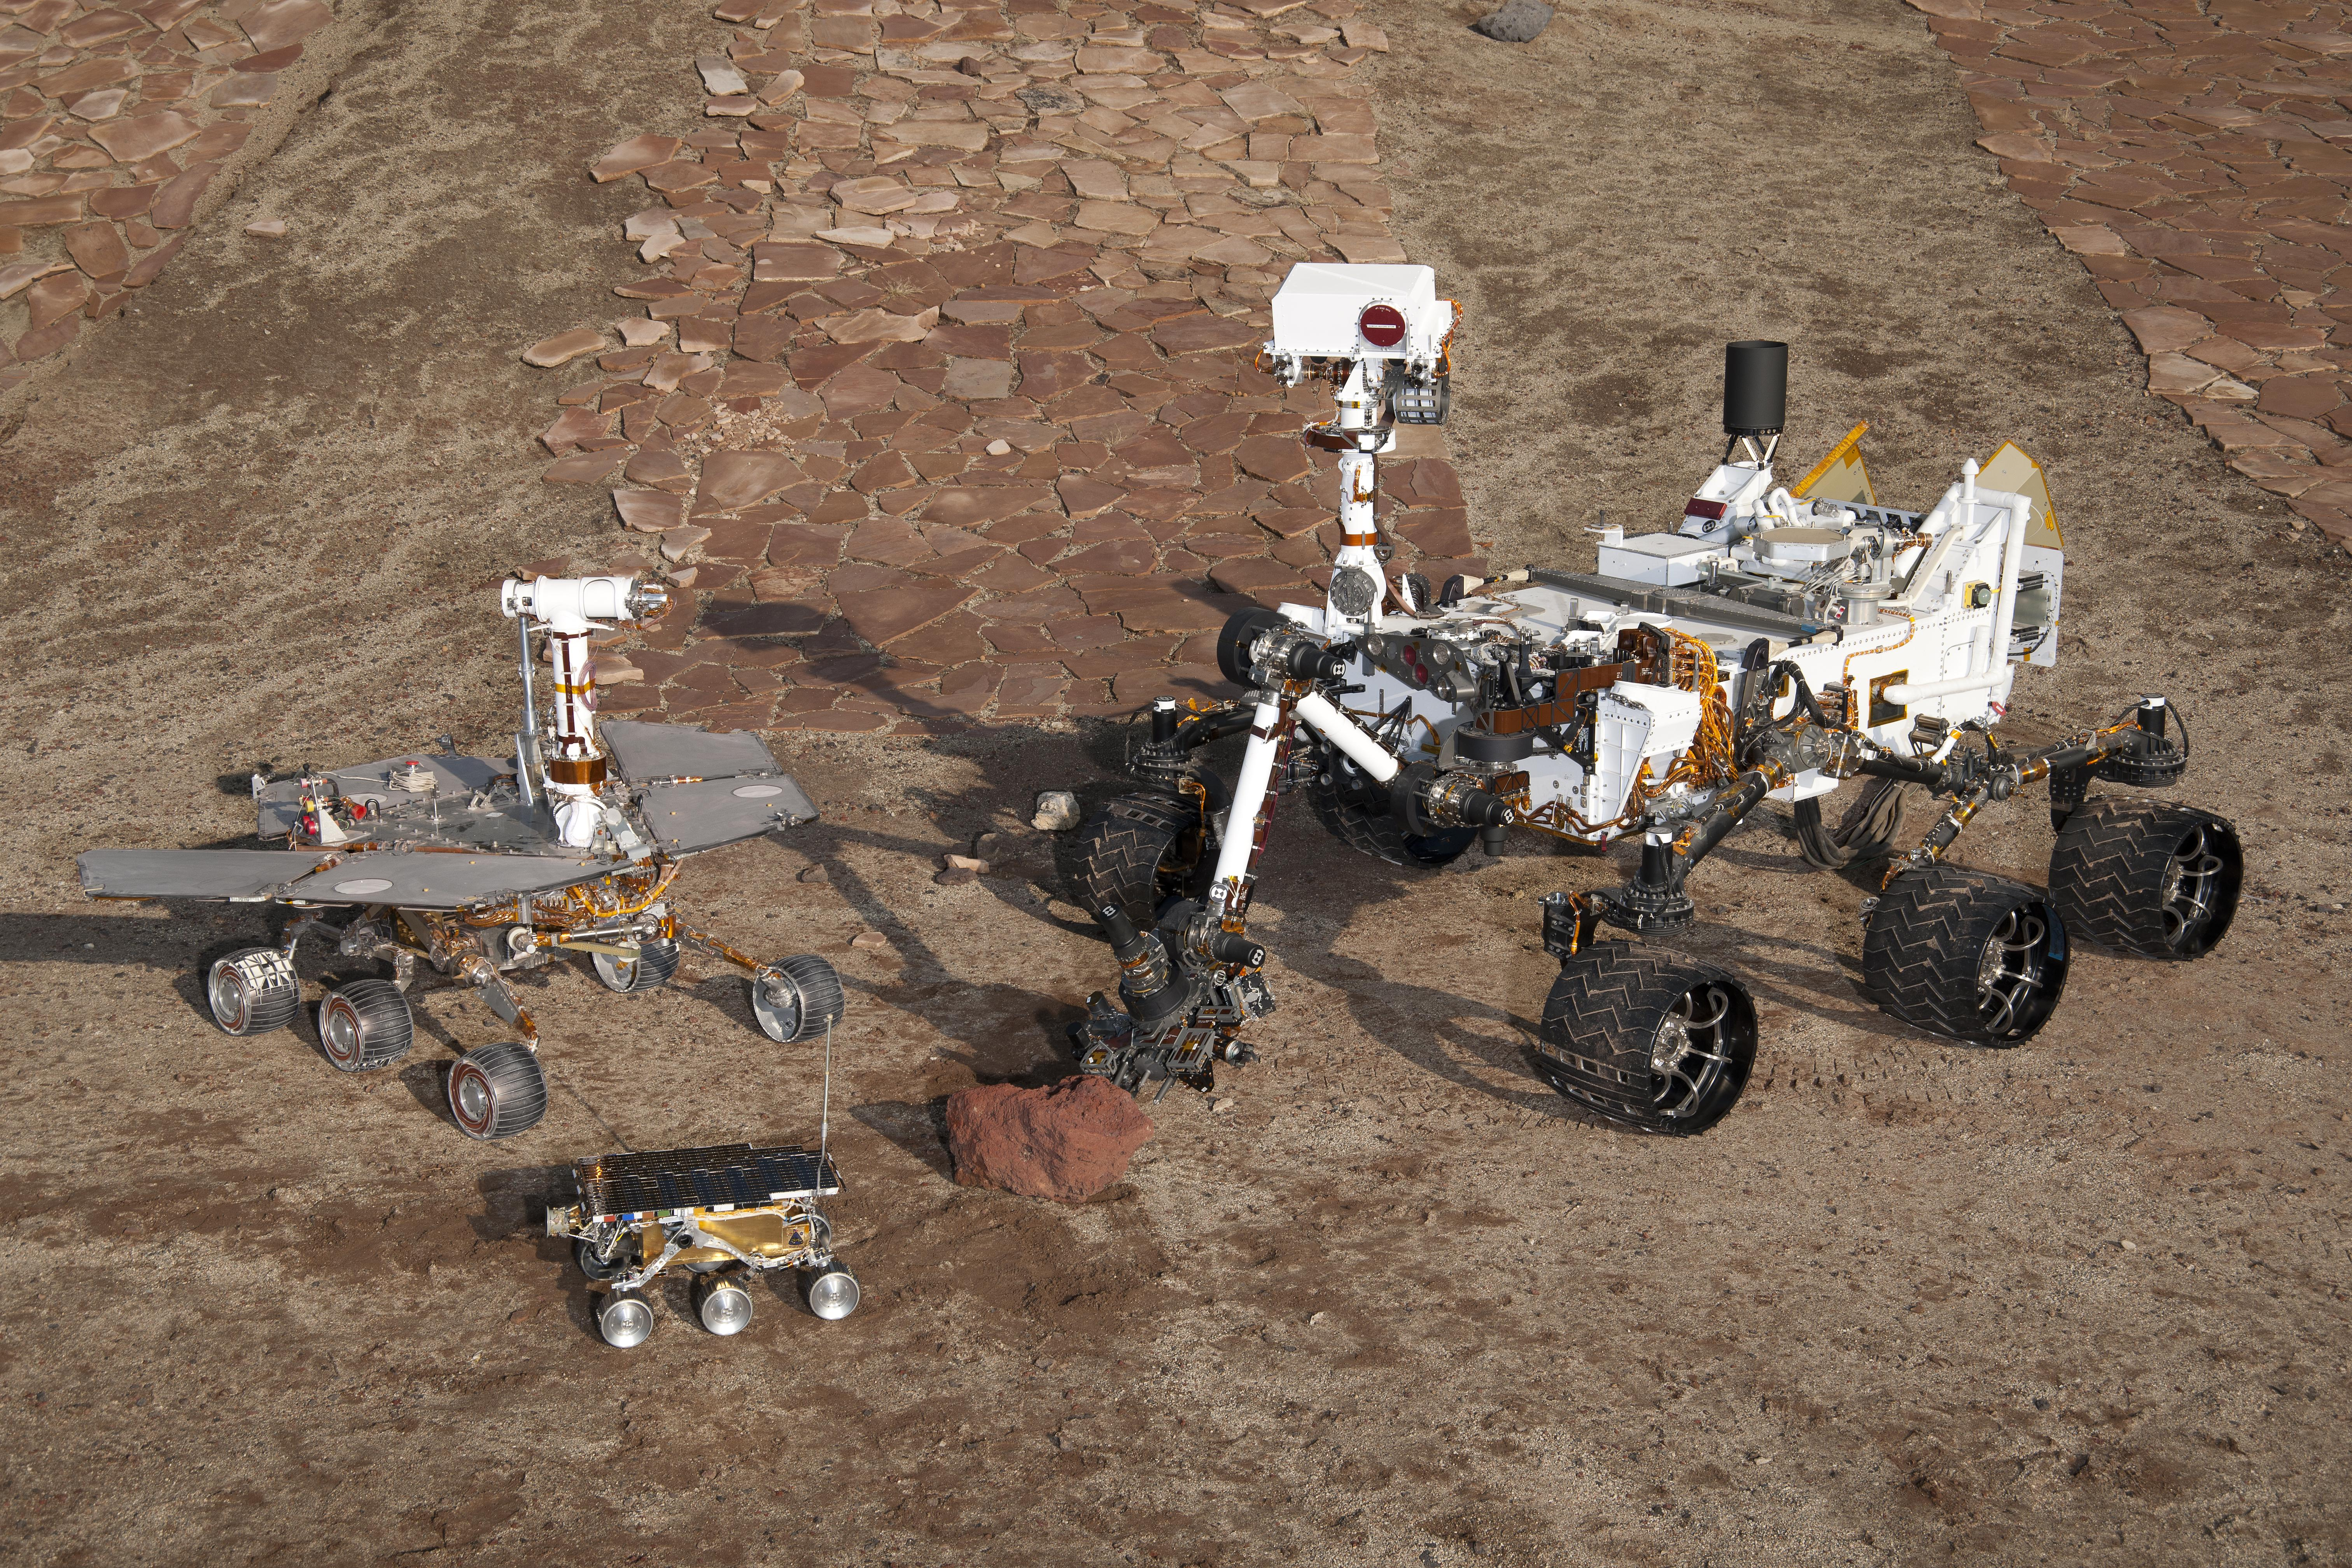 Image of In-Situ Planetary Exploration Systems